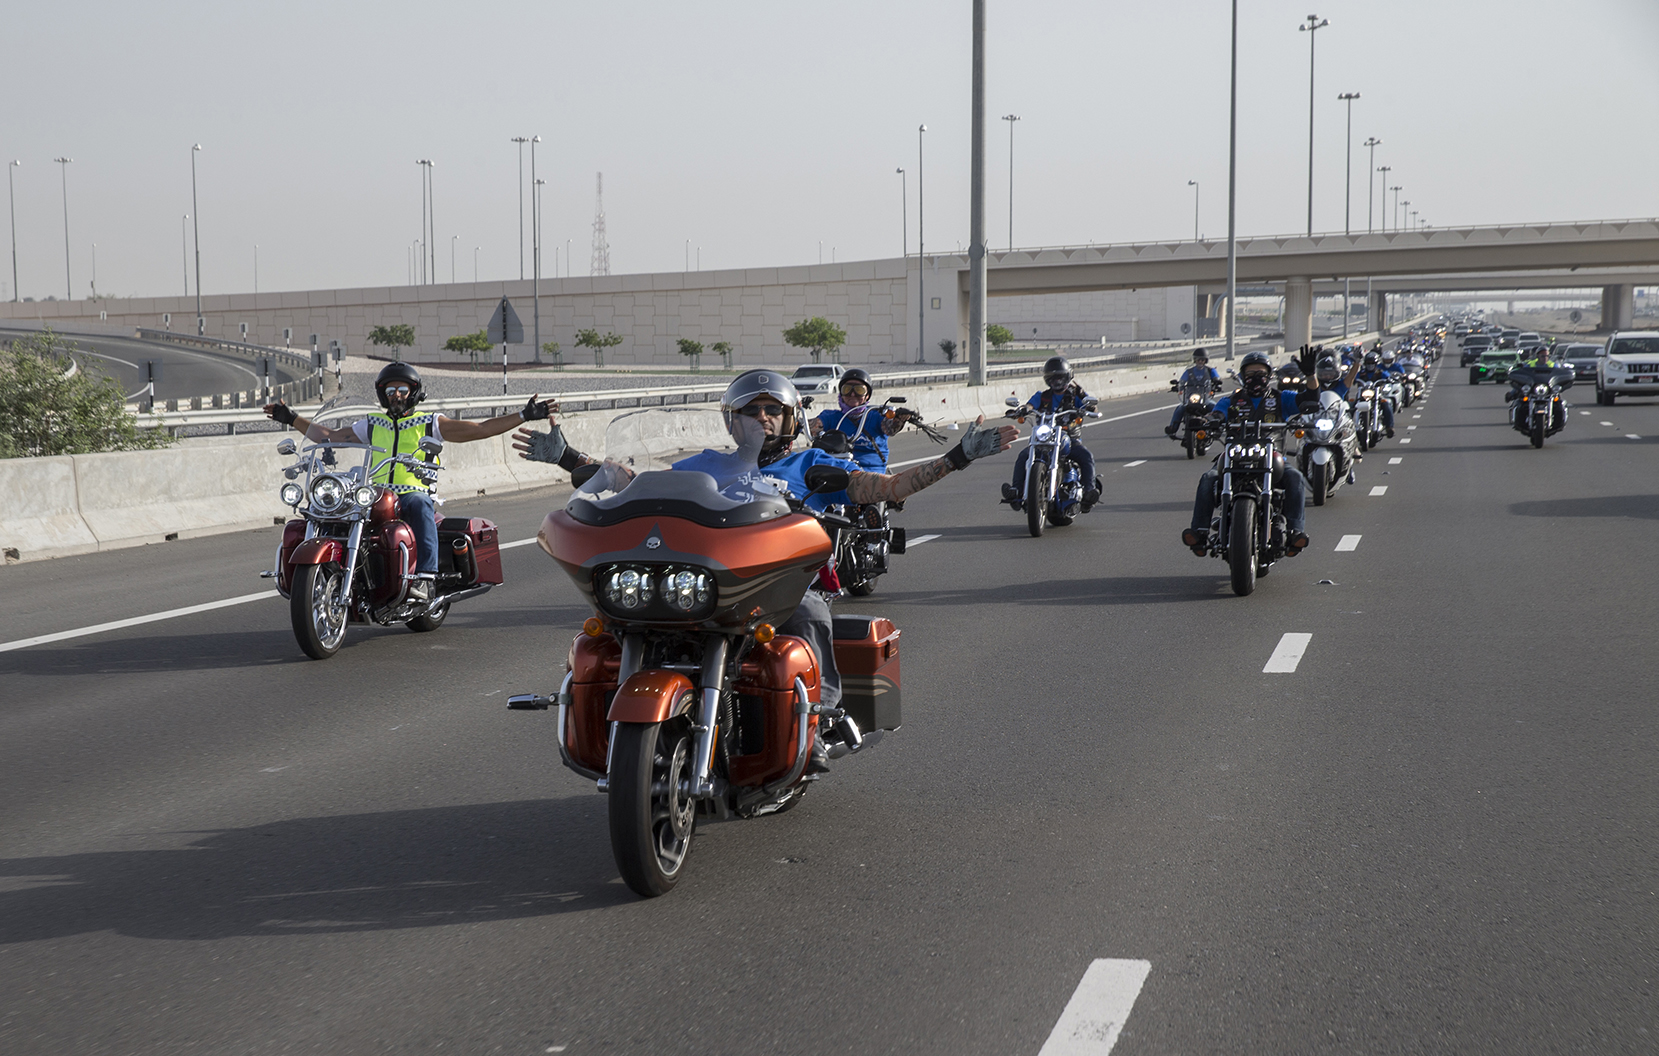 etihad aviation group organises motorbike parade to support autism awareness month 4